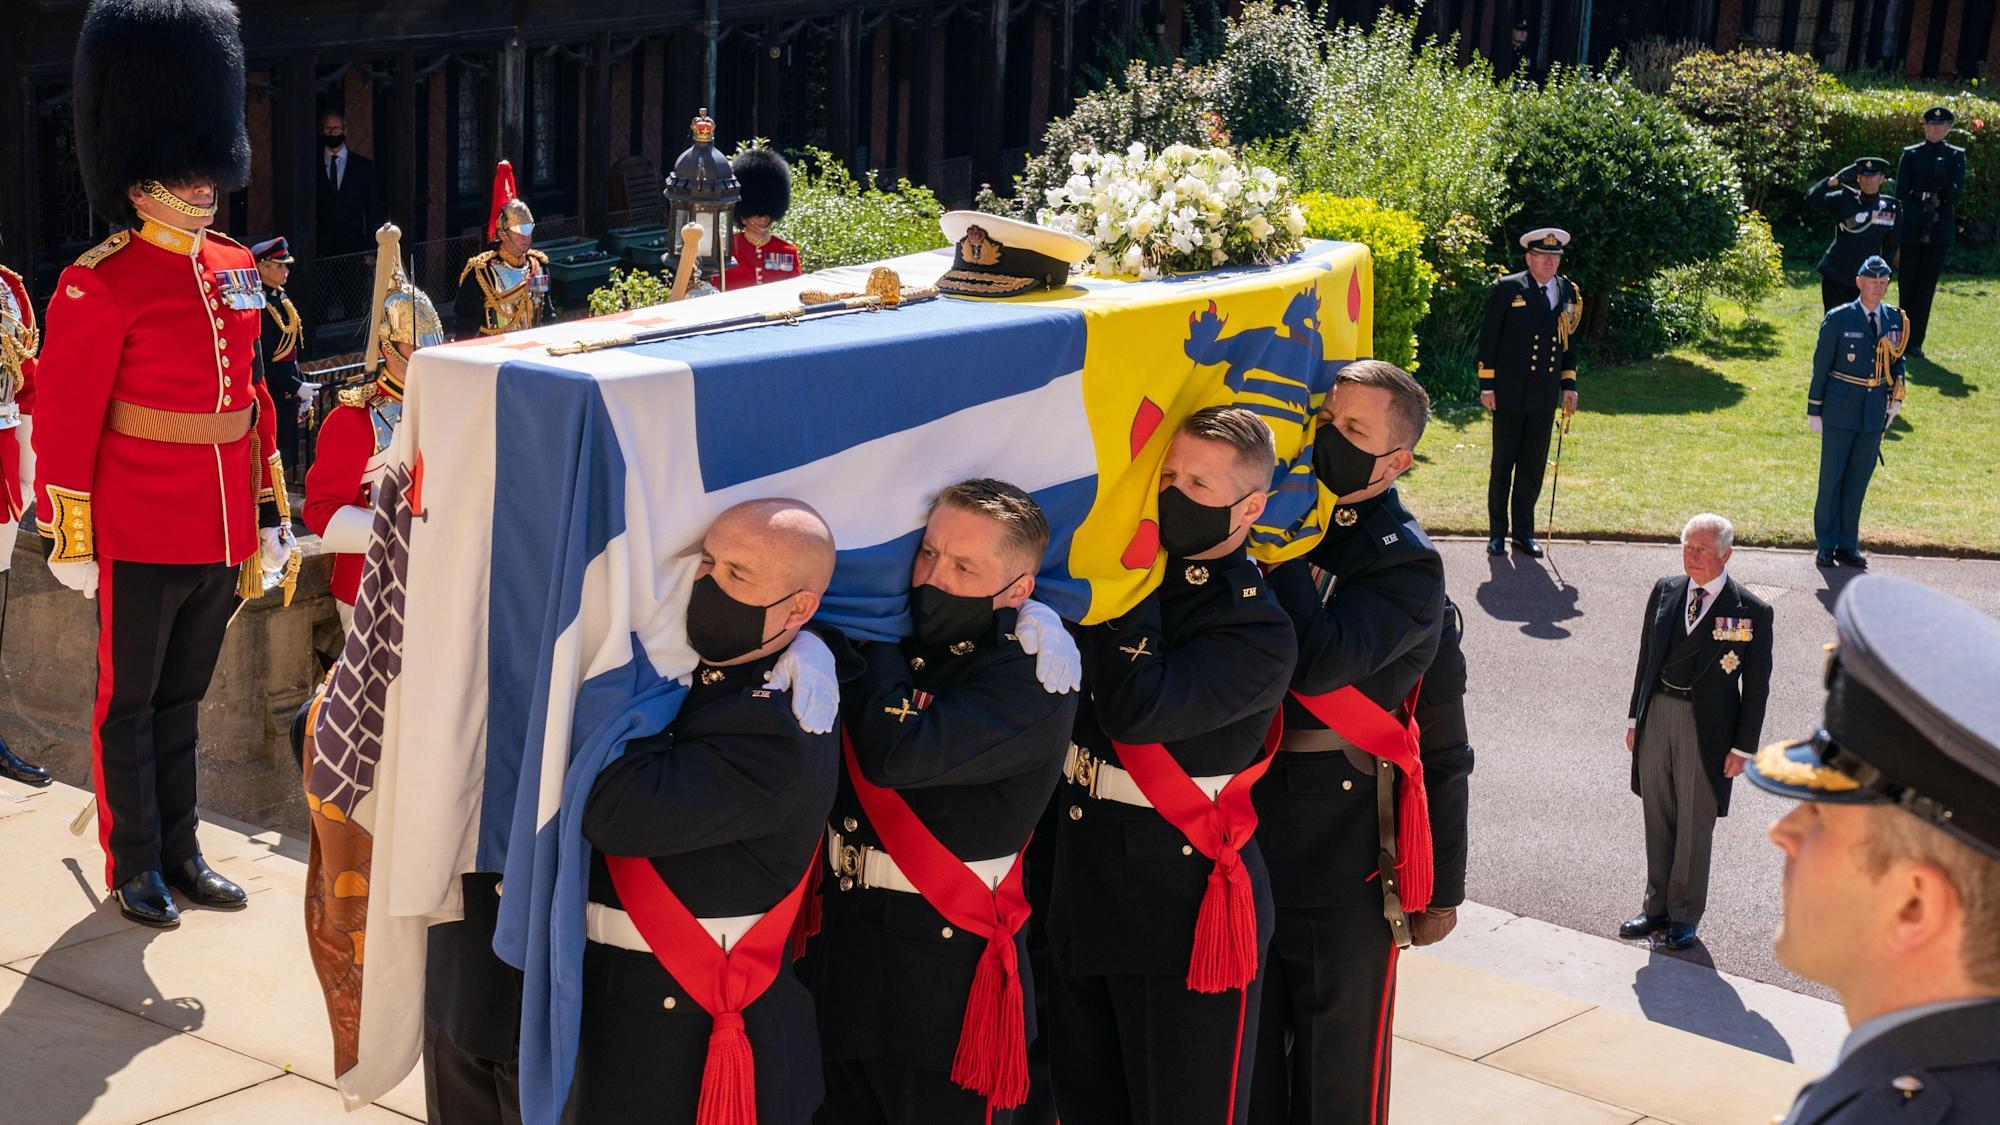 BBC coverage of Duke of Edinburgh funeral watched by almost 7 million